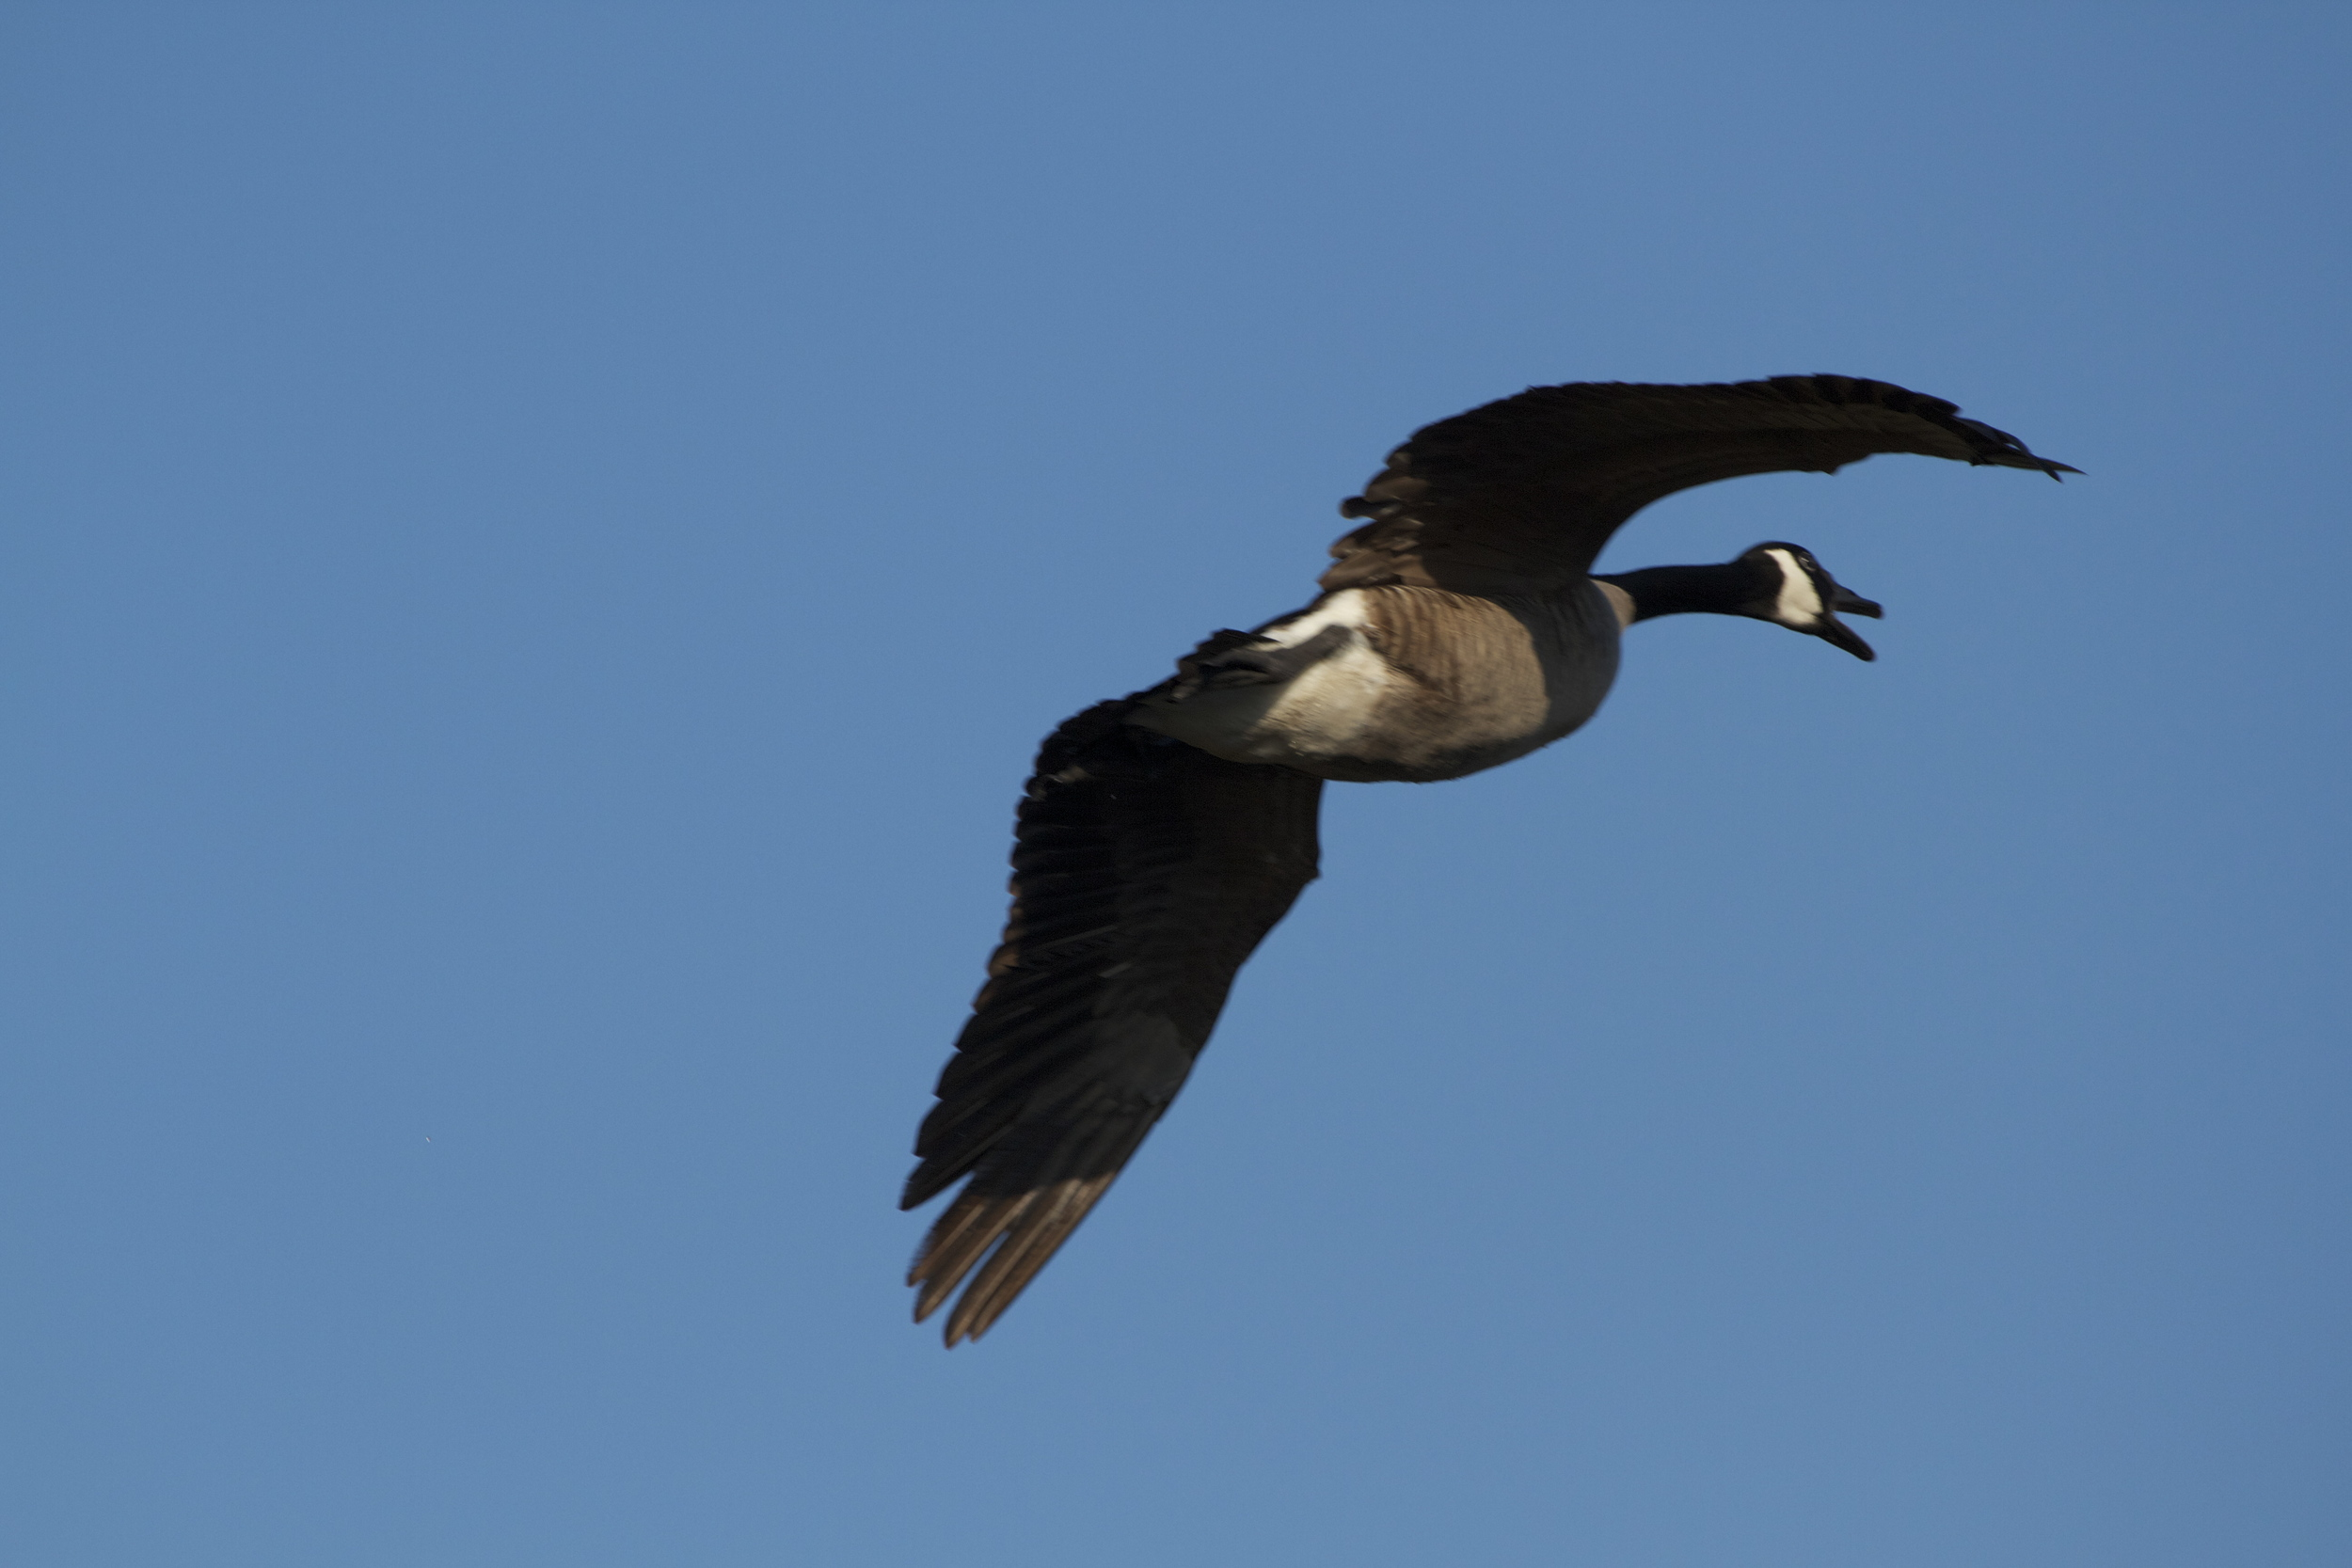 An incoming Canada Goose flies overhead.